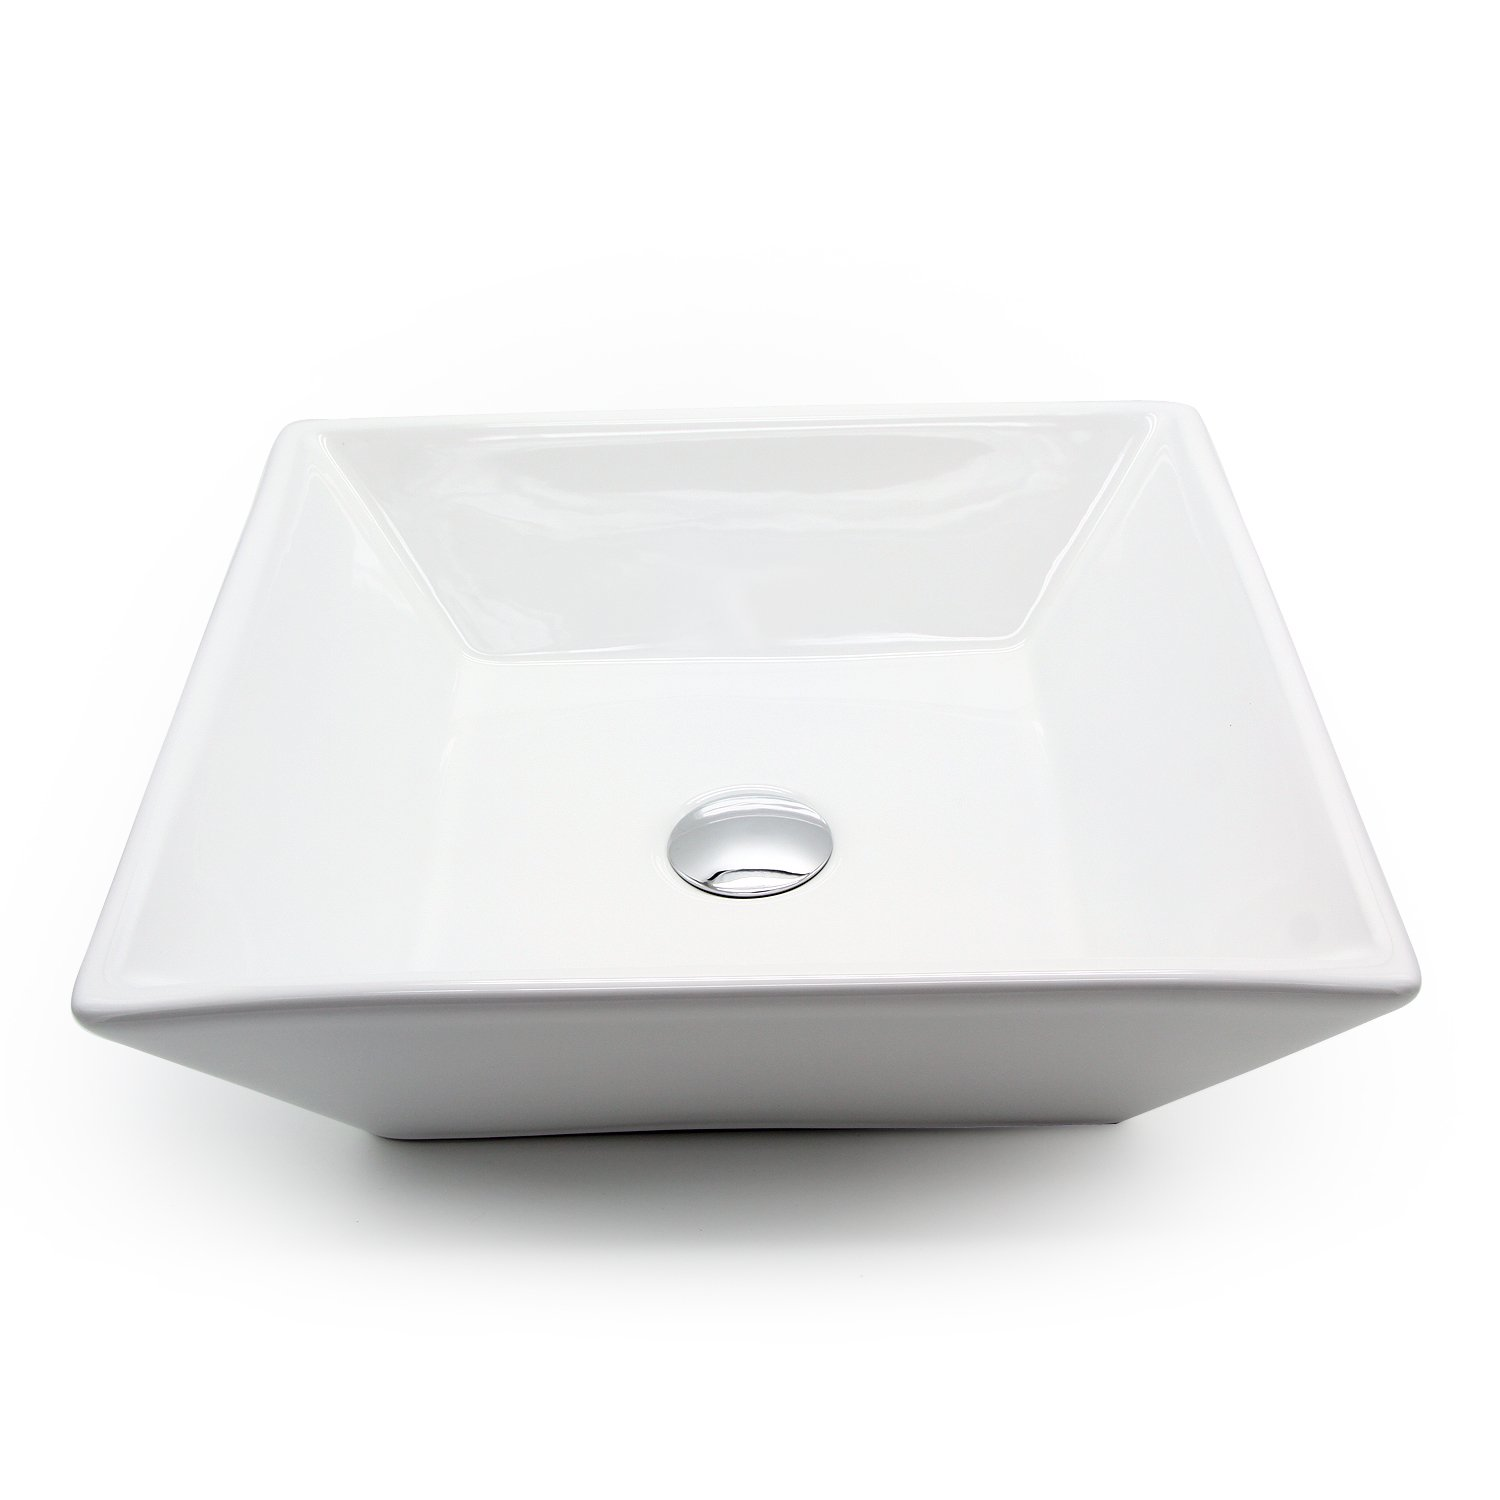 Ainfox Vessel Sink Vanity Bowl Ceramic, Pop-up Drain White Square for Bathroom